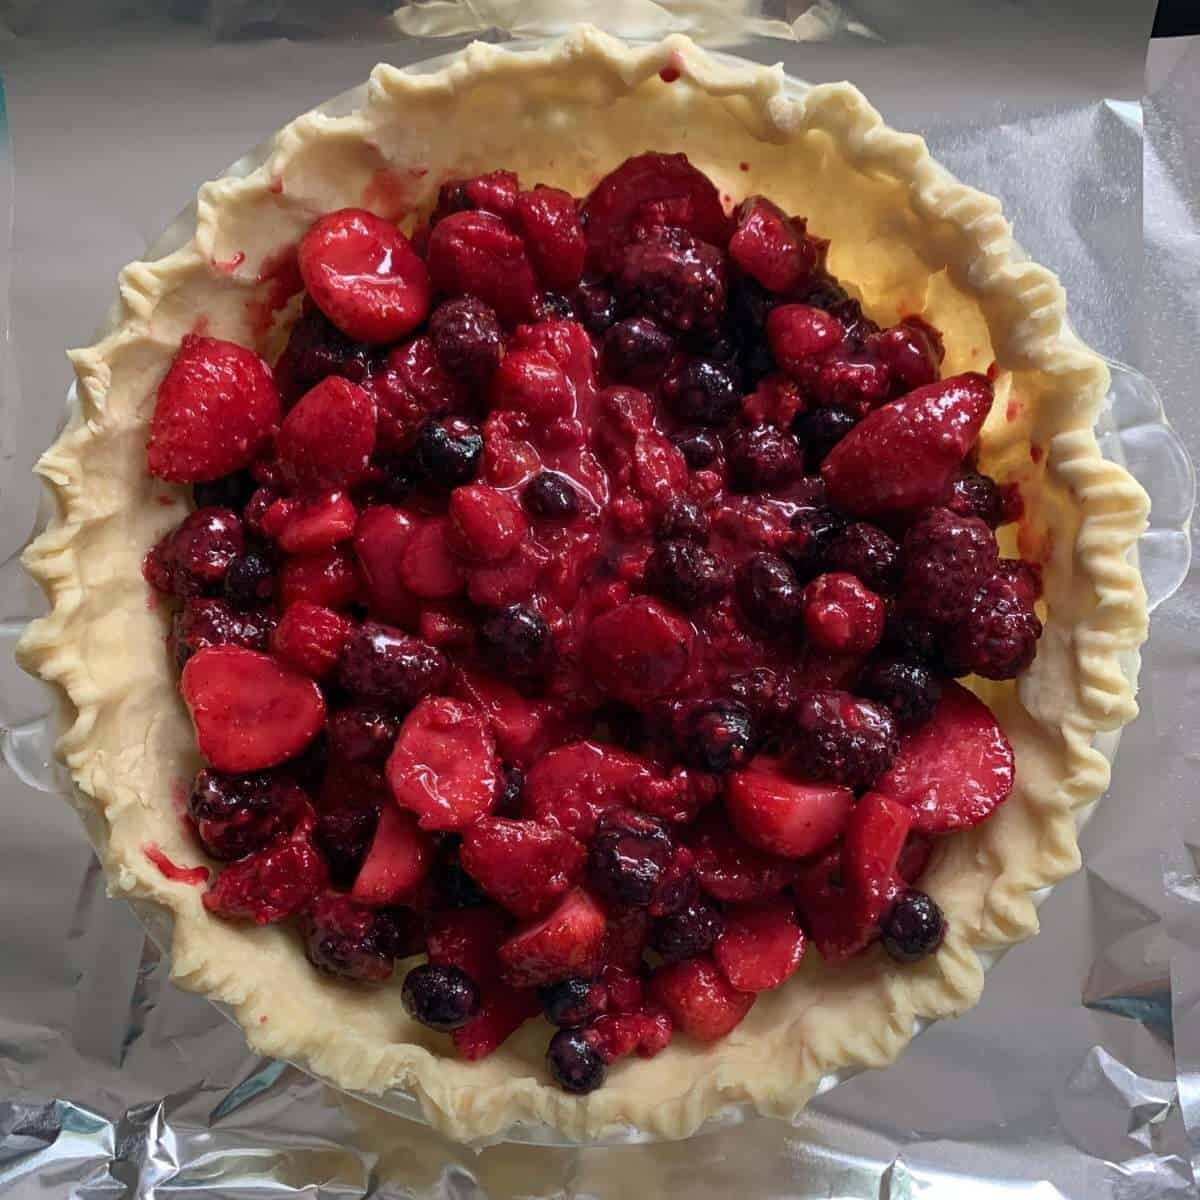 unbaked mixed berry pie top view